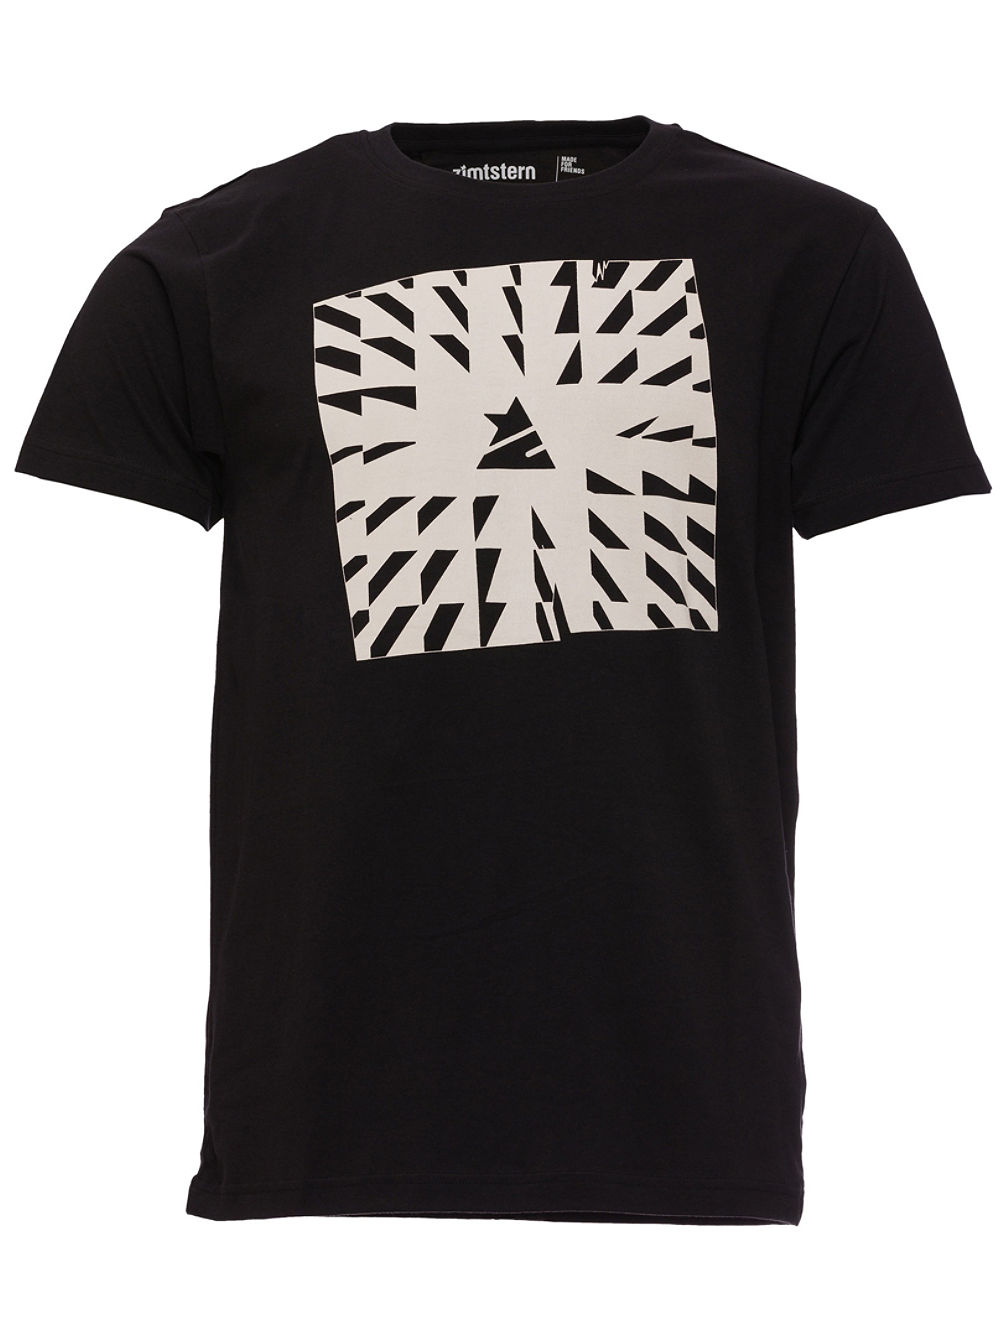 18Tsm Ayozz T-Shirt